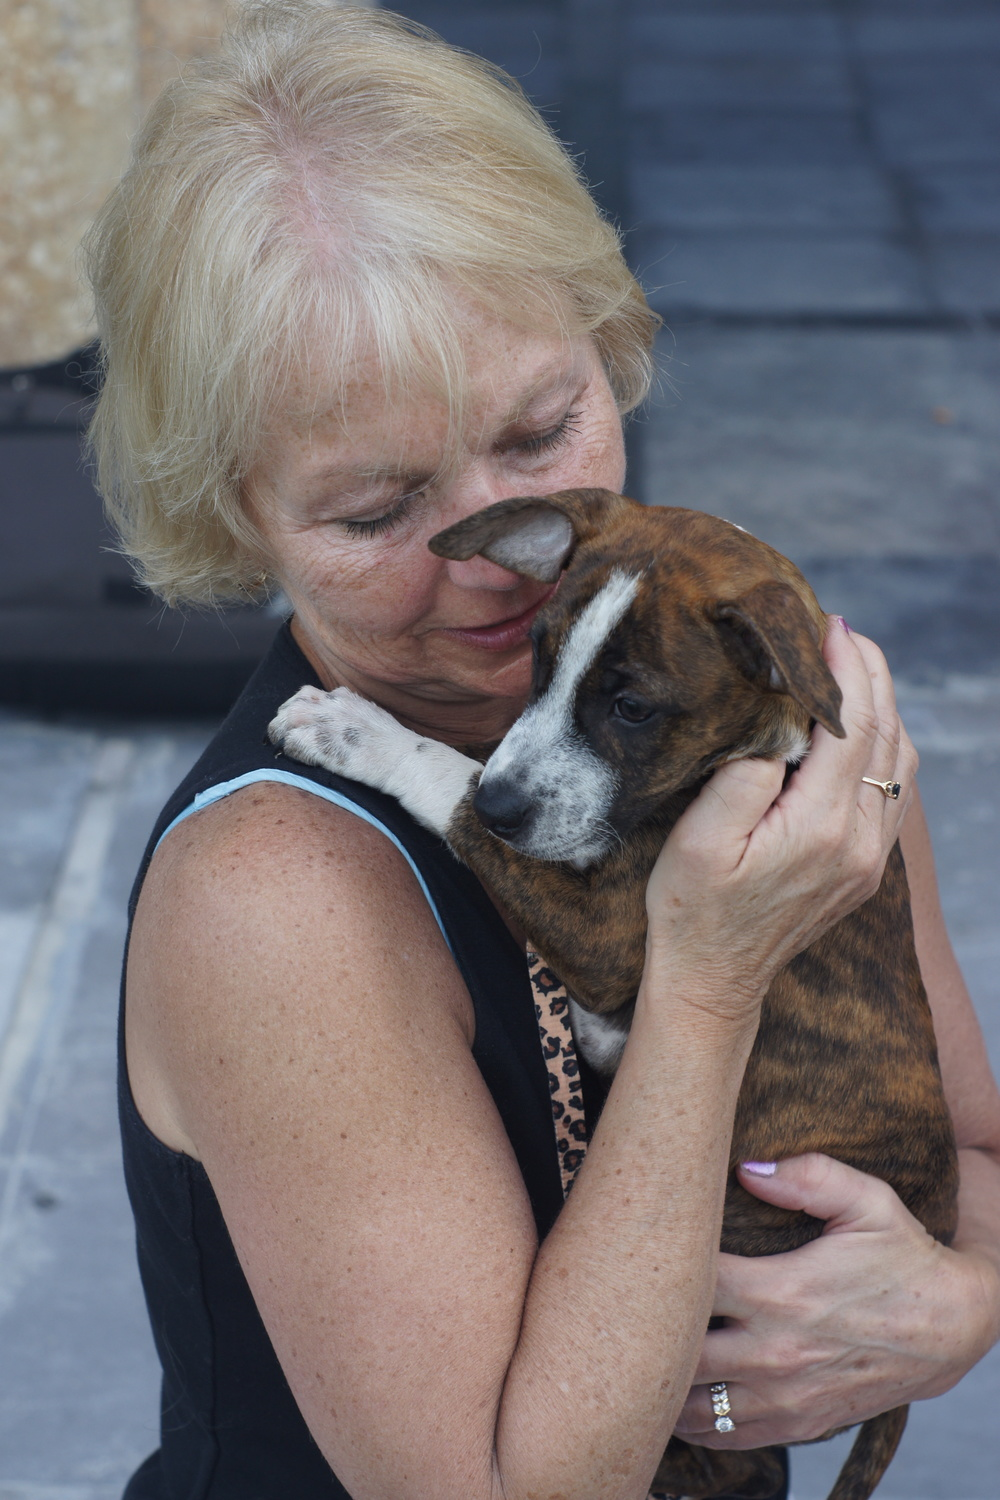 I think Josh's mom wants another grandpuppy, don't you?